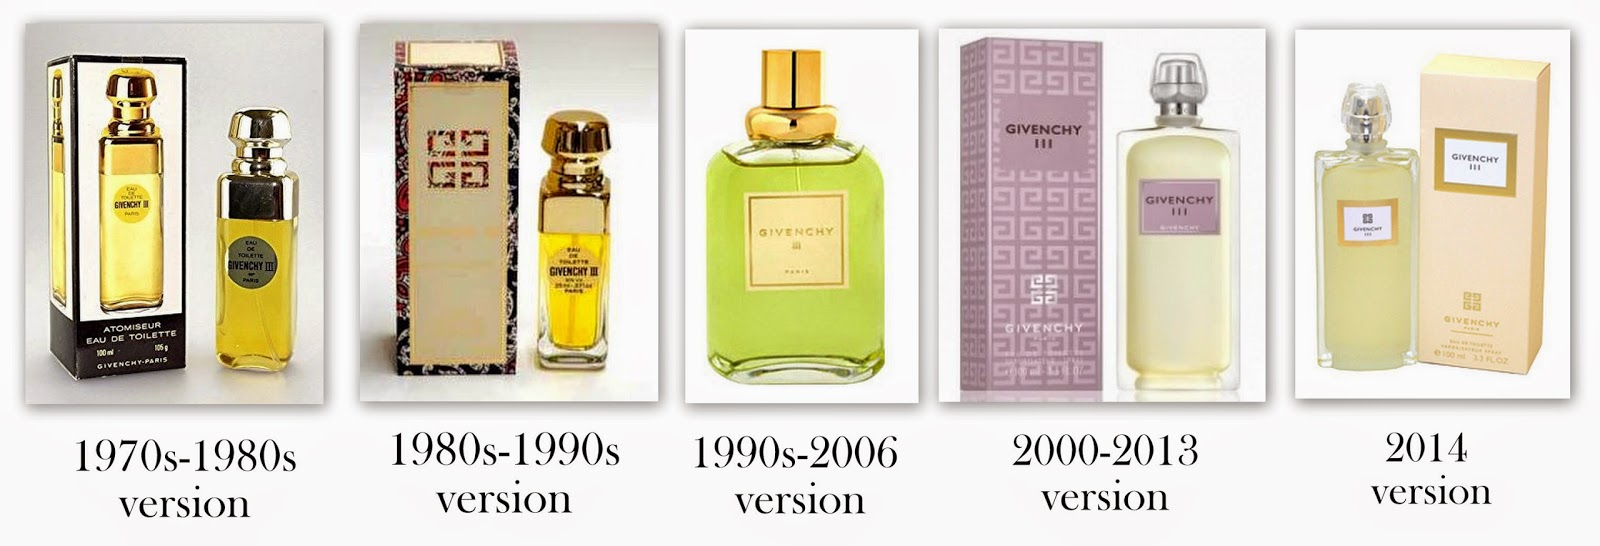 By By C1970 PerfumesIii PerfumesIii C1970 Givenchy PerfumesIii Givenchy Givenchy 0wmN8nvO